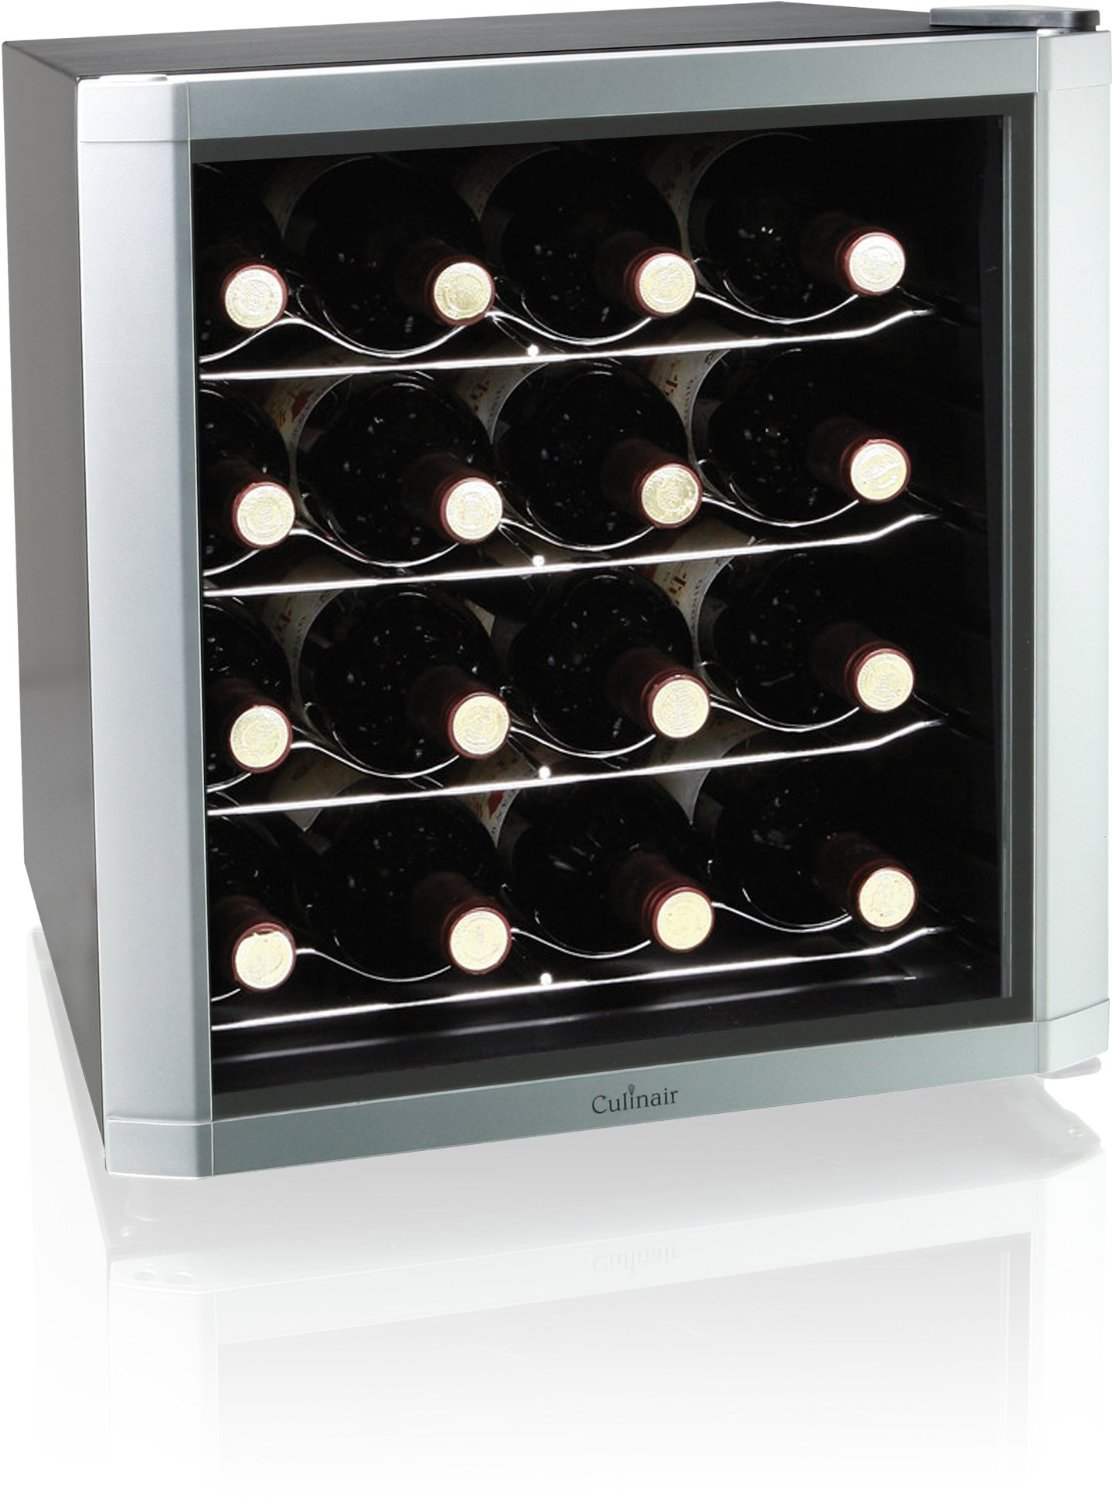 Culinair AW162S Thermoelectric 16 Bottle Wine Cooler ...